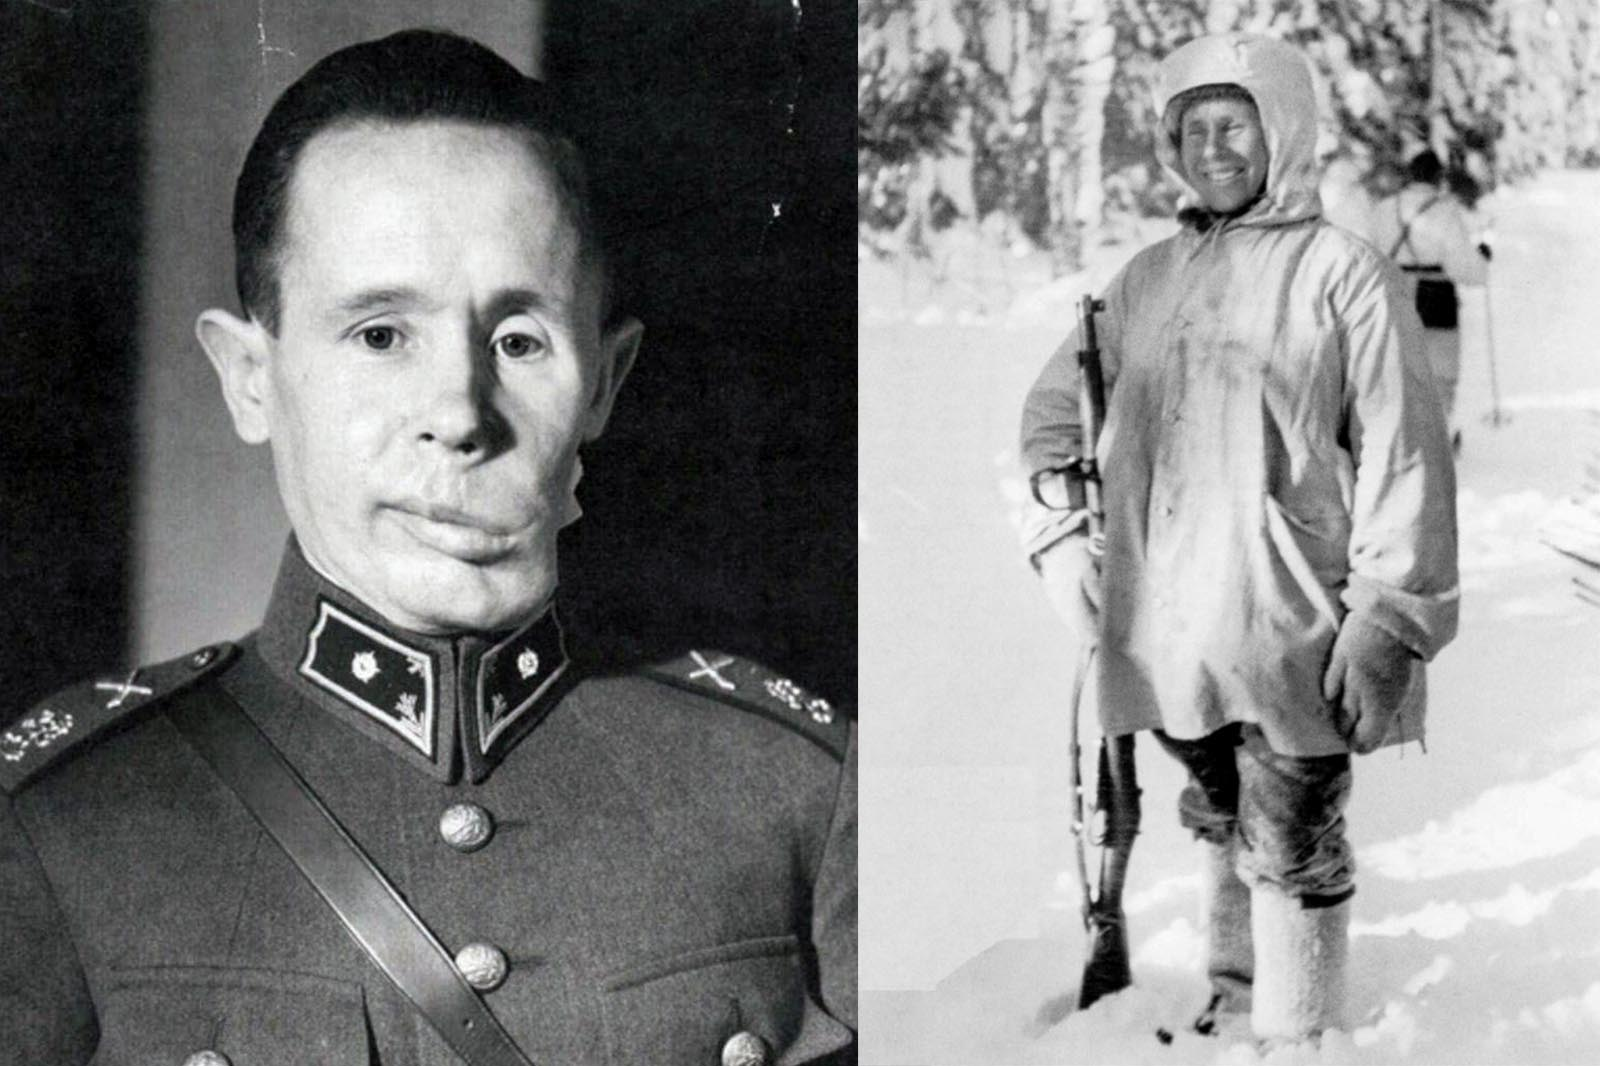 (Left) Häyhä in the 1940s, with visible damage to his left cheek after his  1940 wound, (Right) Häyhä after being awarded the honorary rifle model 28.